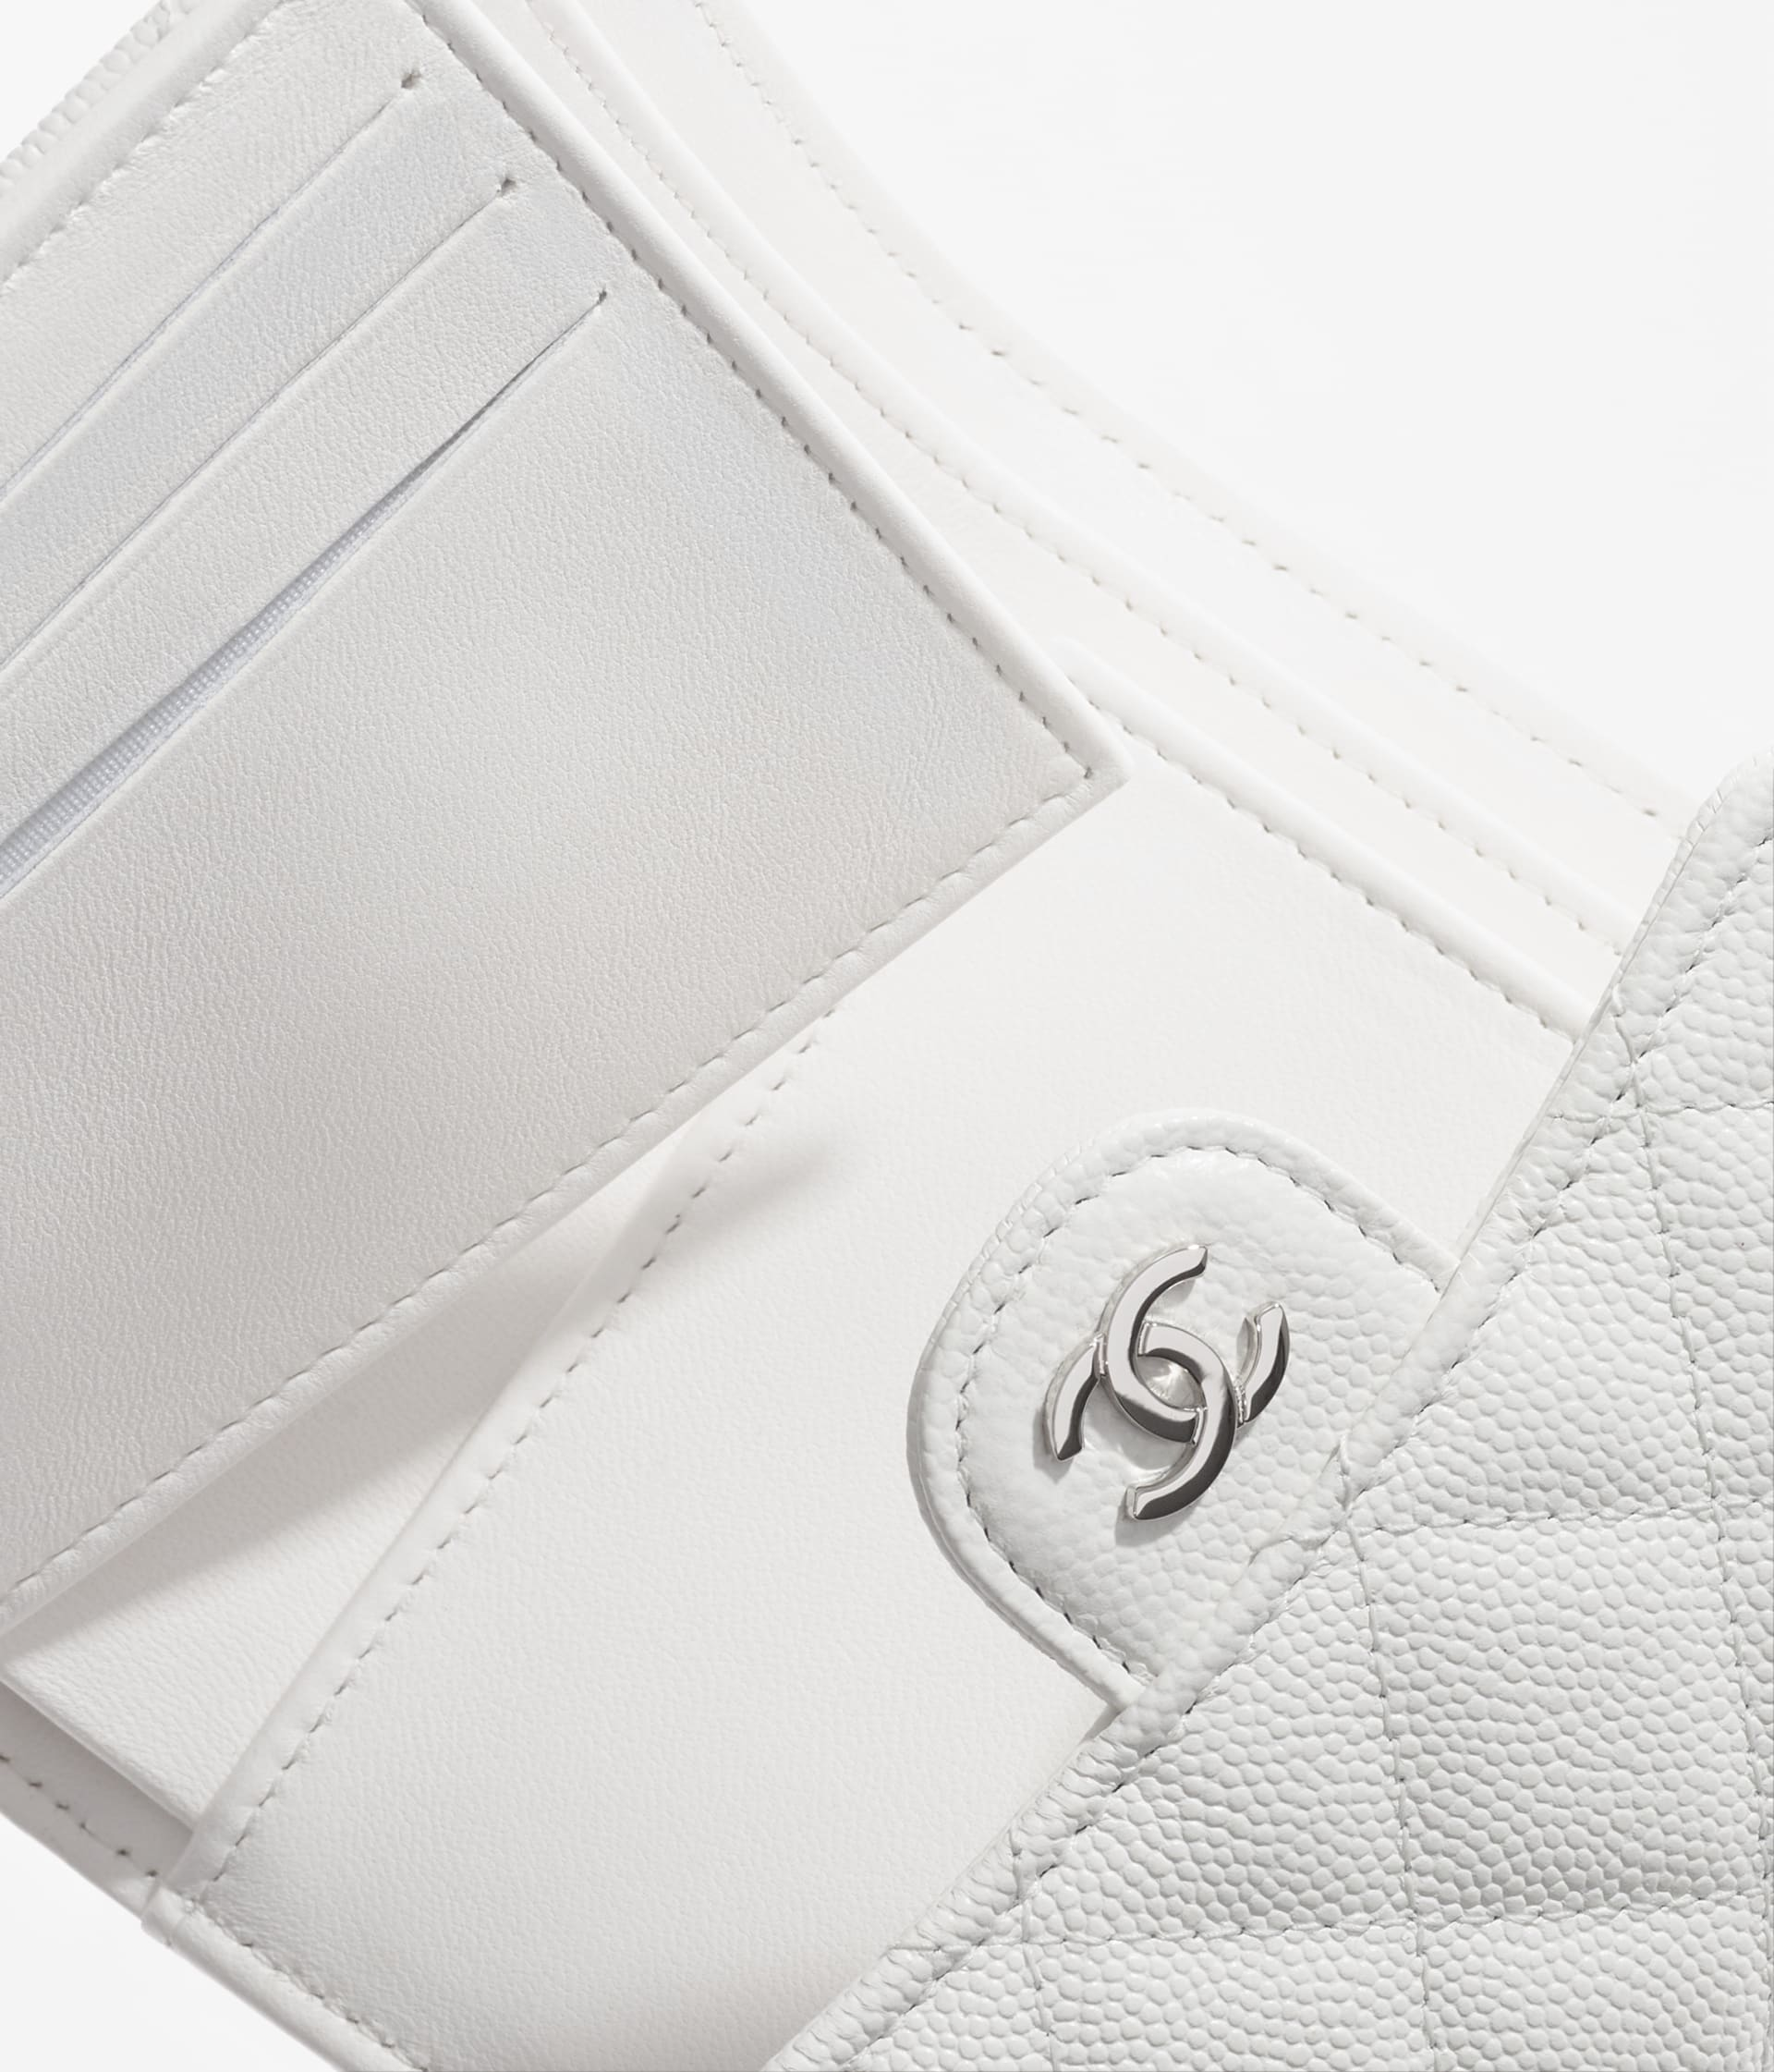 image 3 - Classic Small Flap Wallet - Grained Calfskin & Silver-Tone Metal - White